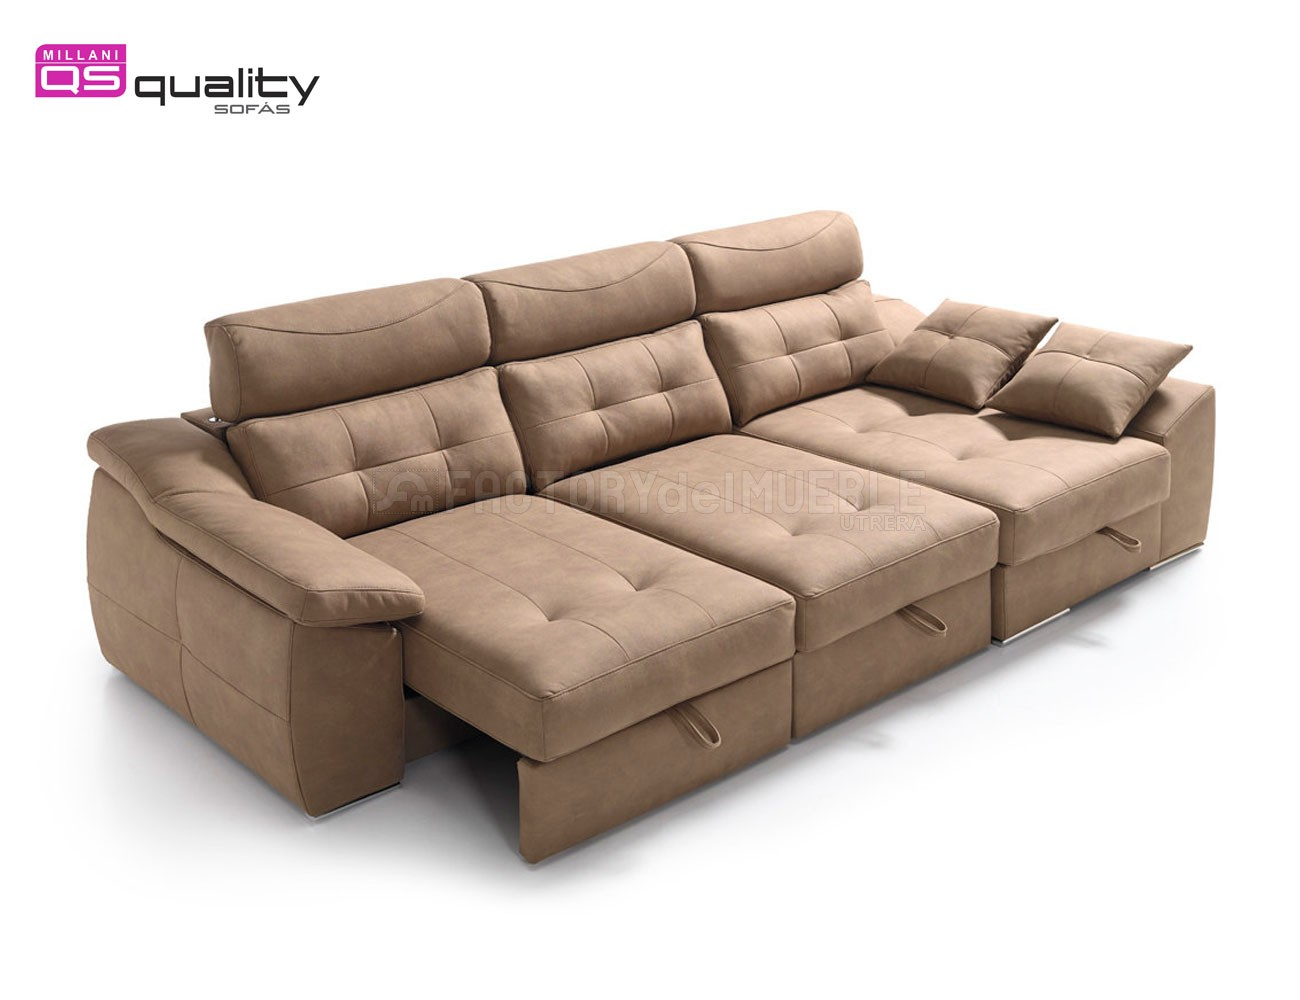 Beautiful Quality Sofas 19 For with Quality Sofas